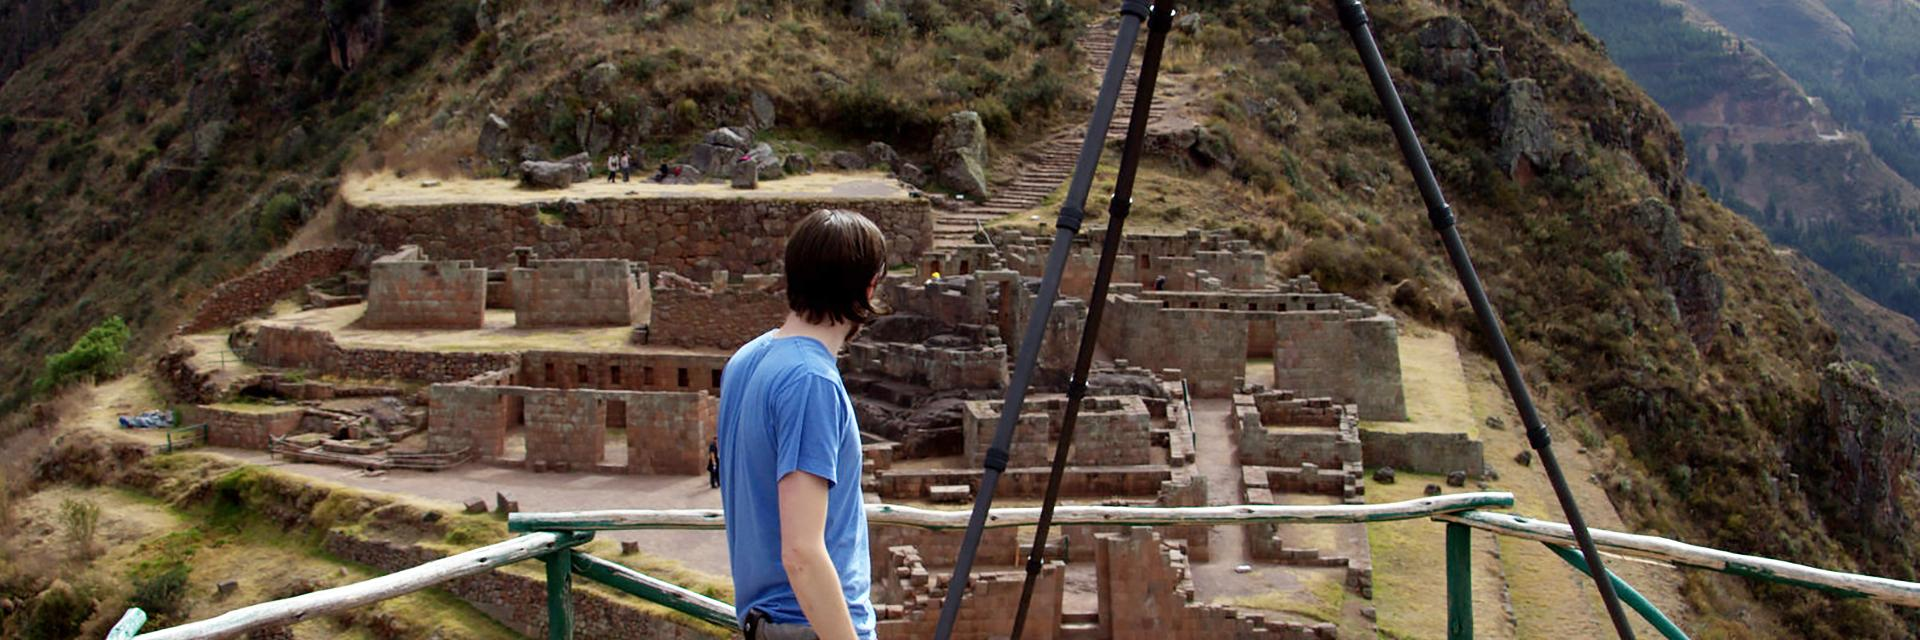 Jon Blundell, a 3D digitization specialist at the Smithsonian, capturing 3D data points of the Inka archaeological site at Pisac. Pisac, Peru, 2014. Photo by Samy Chiclla